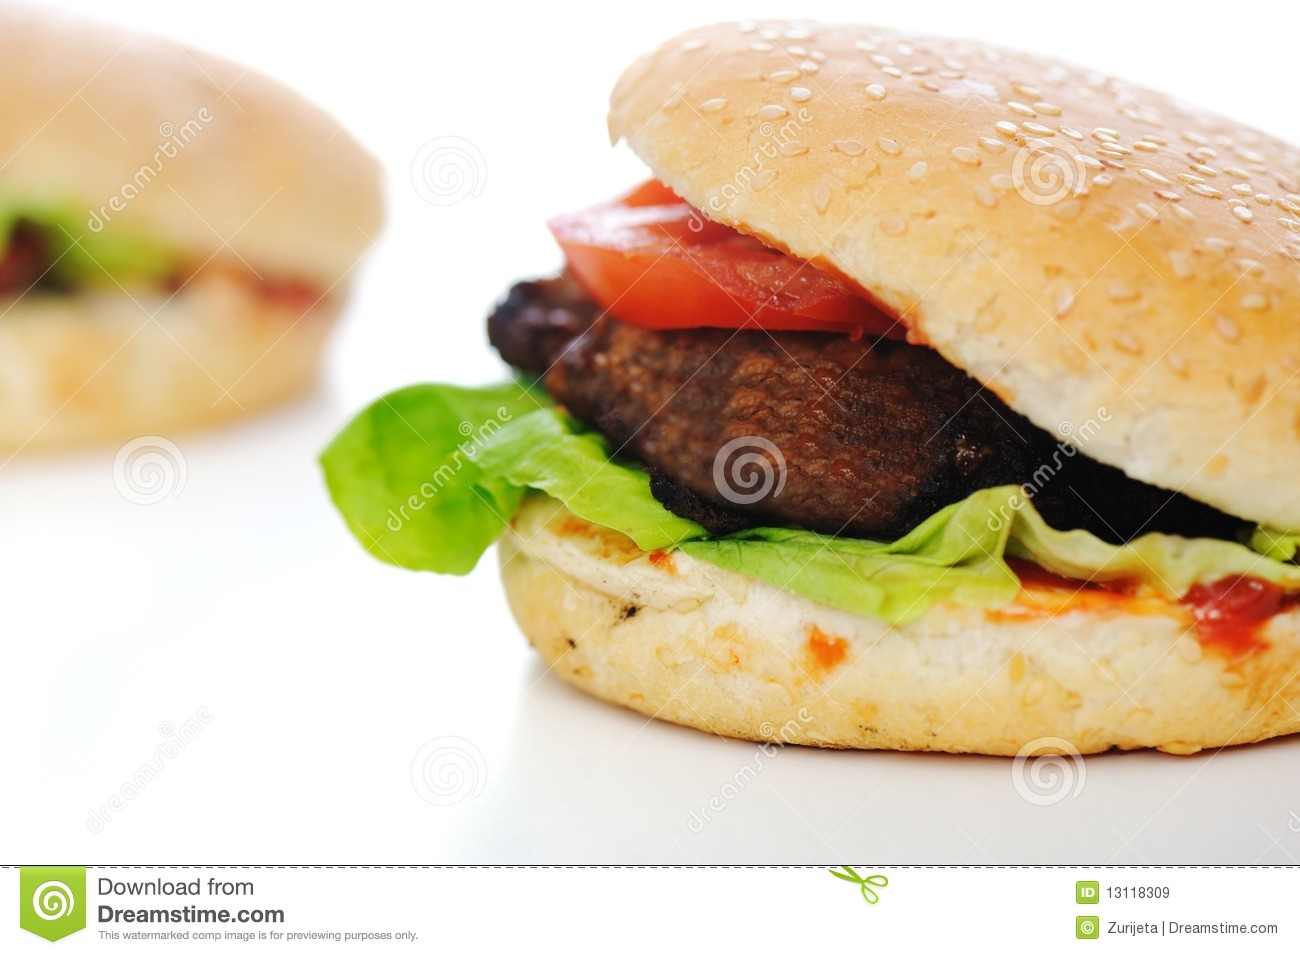 Burger Fast Food Royalty Free Stock Images Image 13118309 : burger fast food 13118309 from dreamstime.com size 1300 x 955 jpeg 192kB